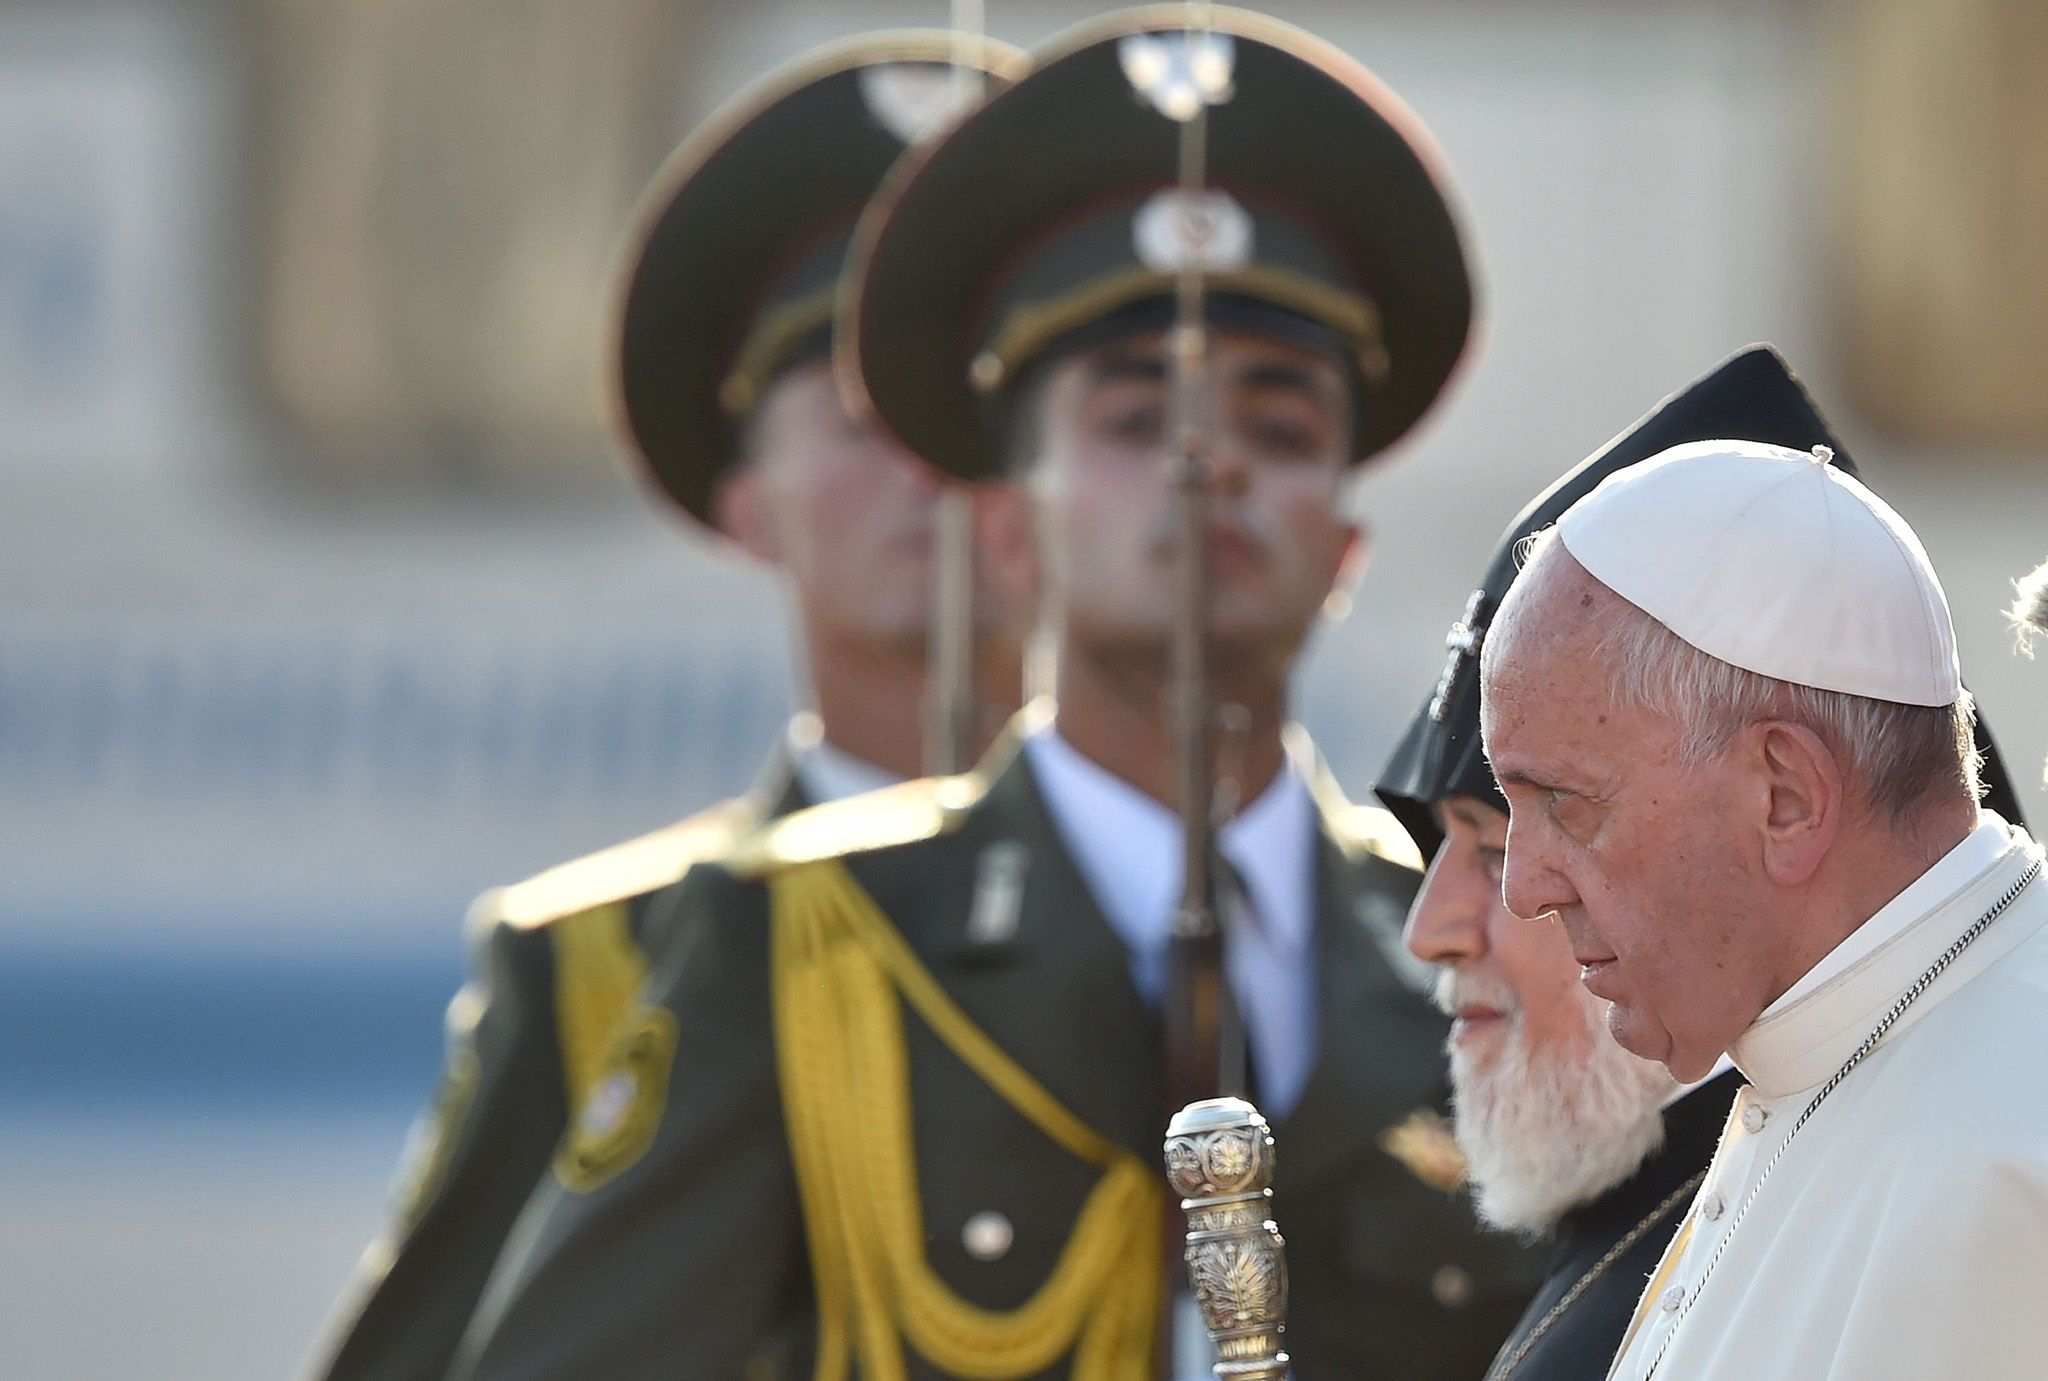 Pope Francis, flanked by Catholicos of All Armenians Karekin II, walks past honour guards to board a plane for Rome at Yerevan's Zvartnots Airport